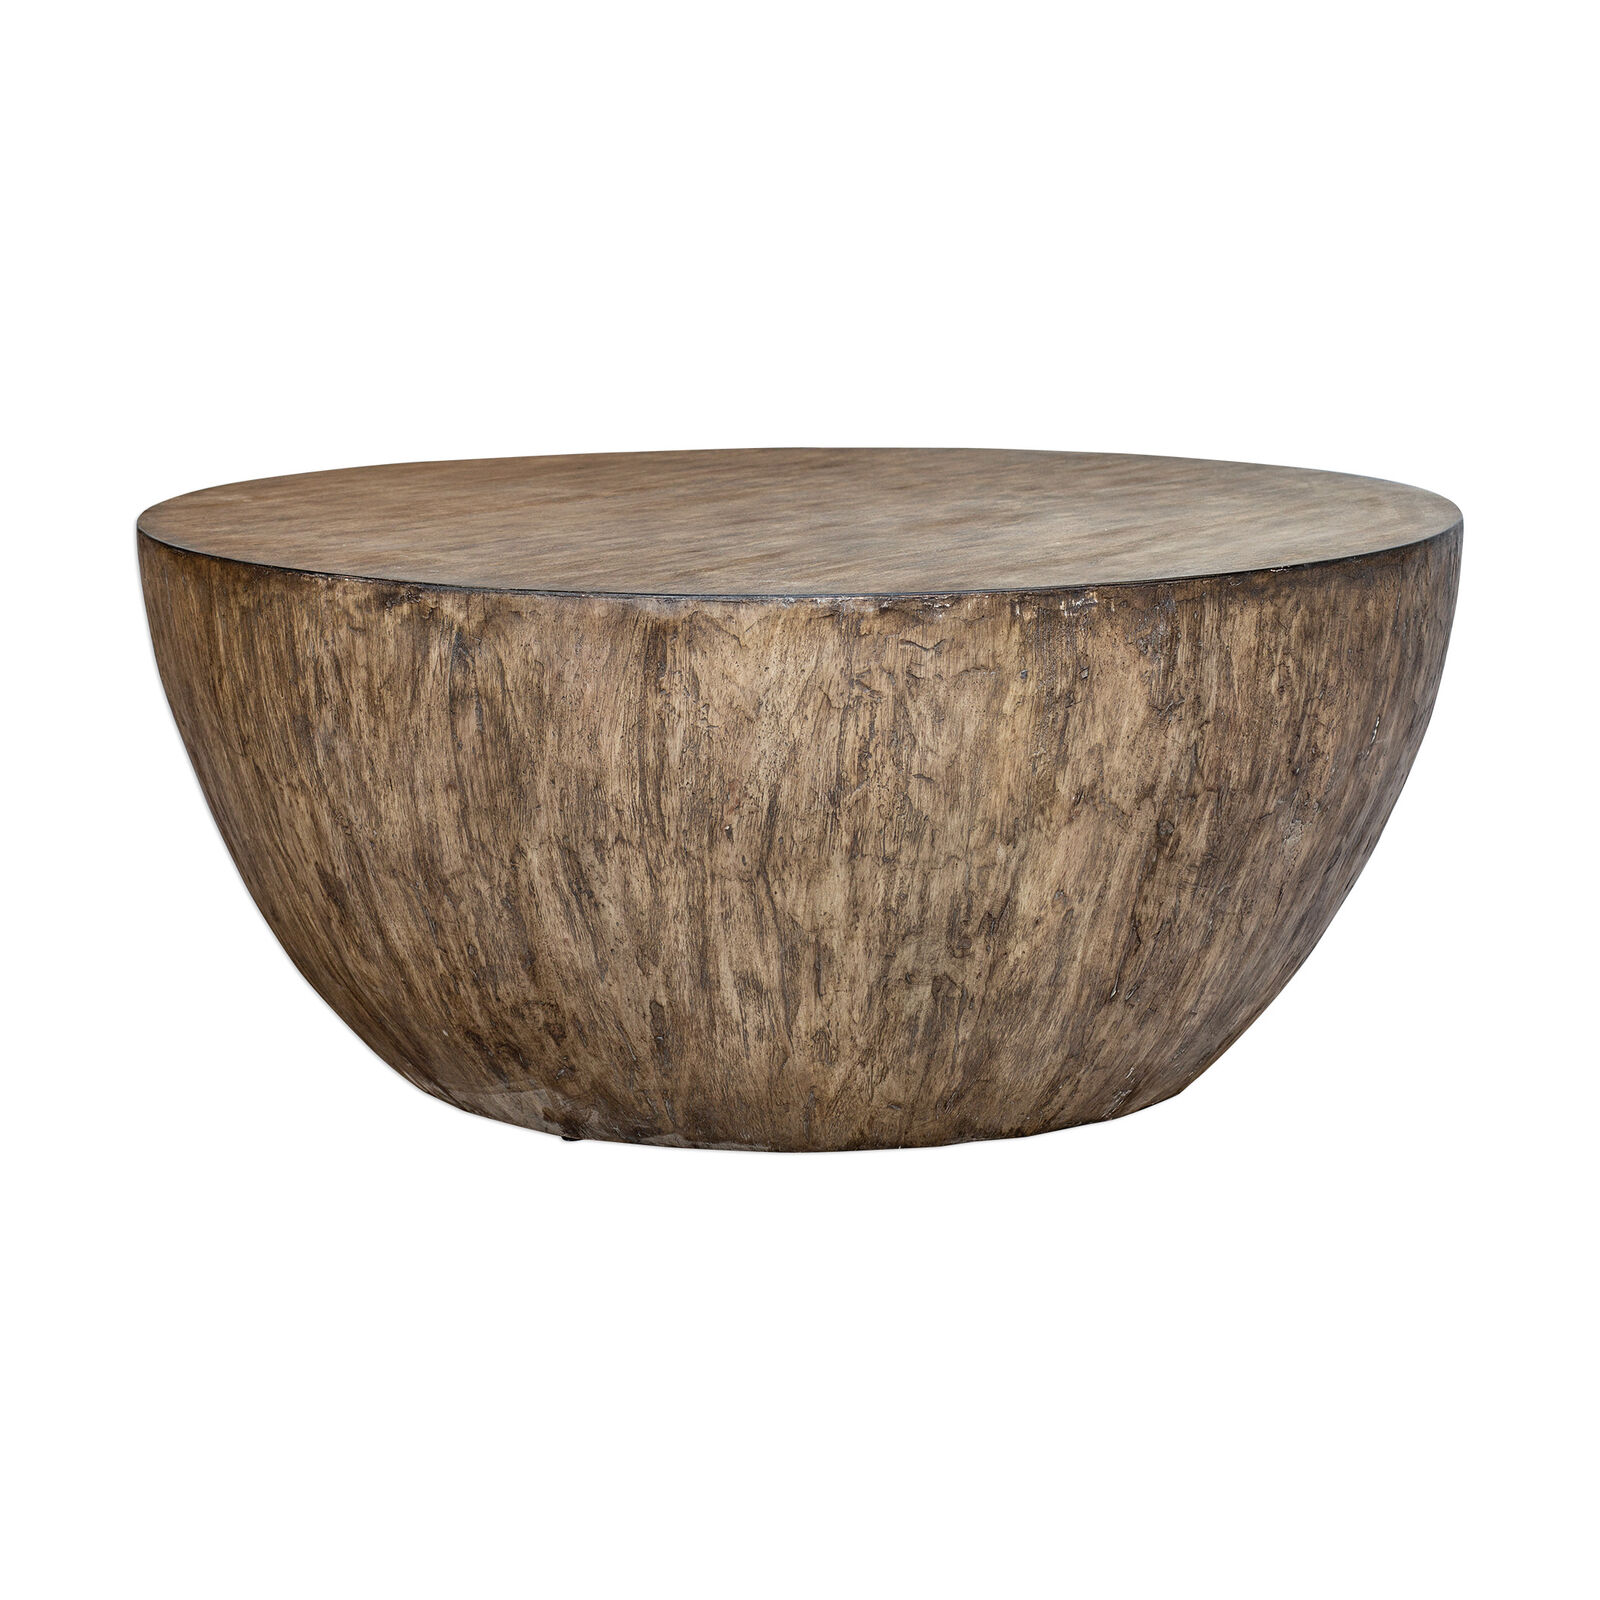 - Faceted Large Round Light Wood Coffee Table Modern Geometric Block